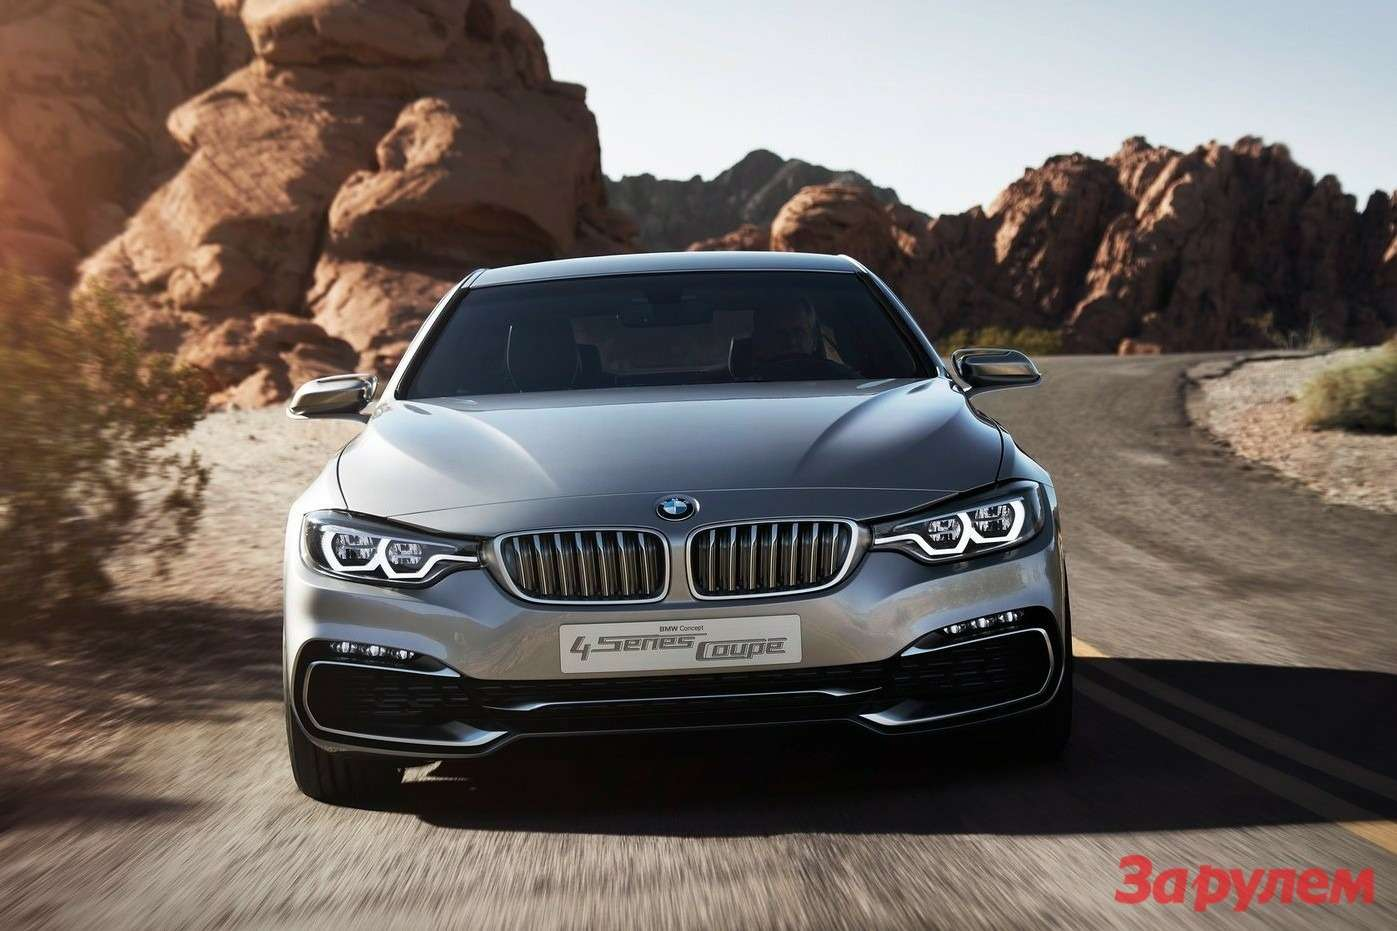 BMW-4-Series_Coupe_Concept_2013_1600x1200_wallpaper_17